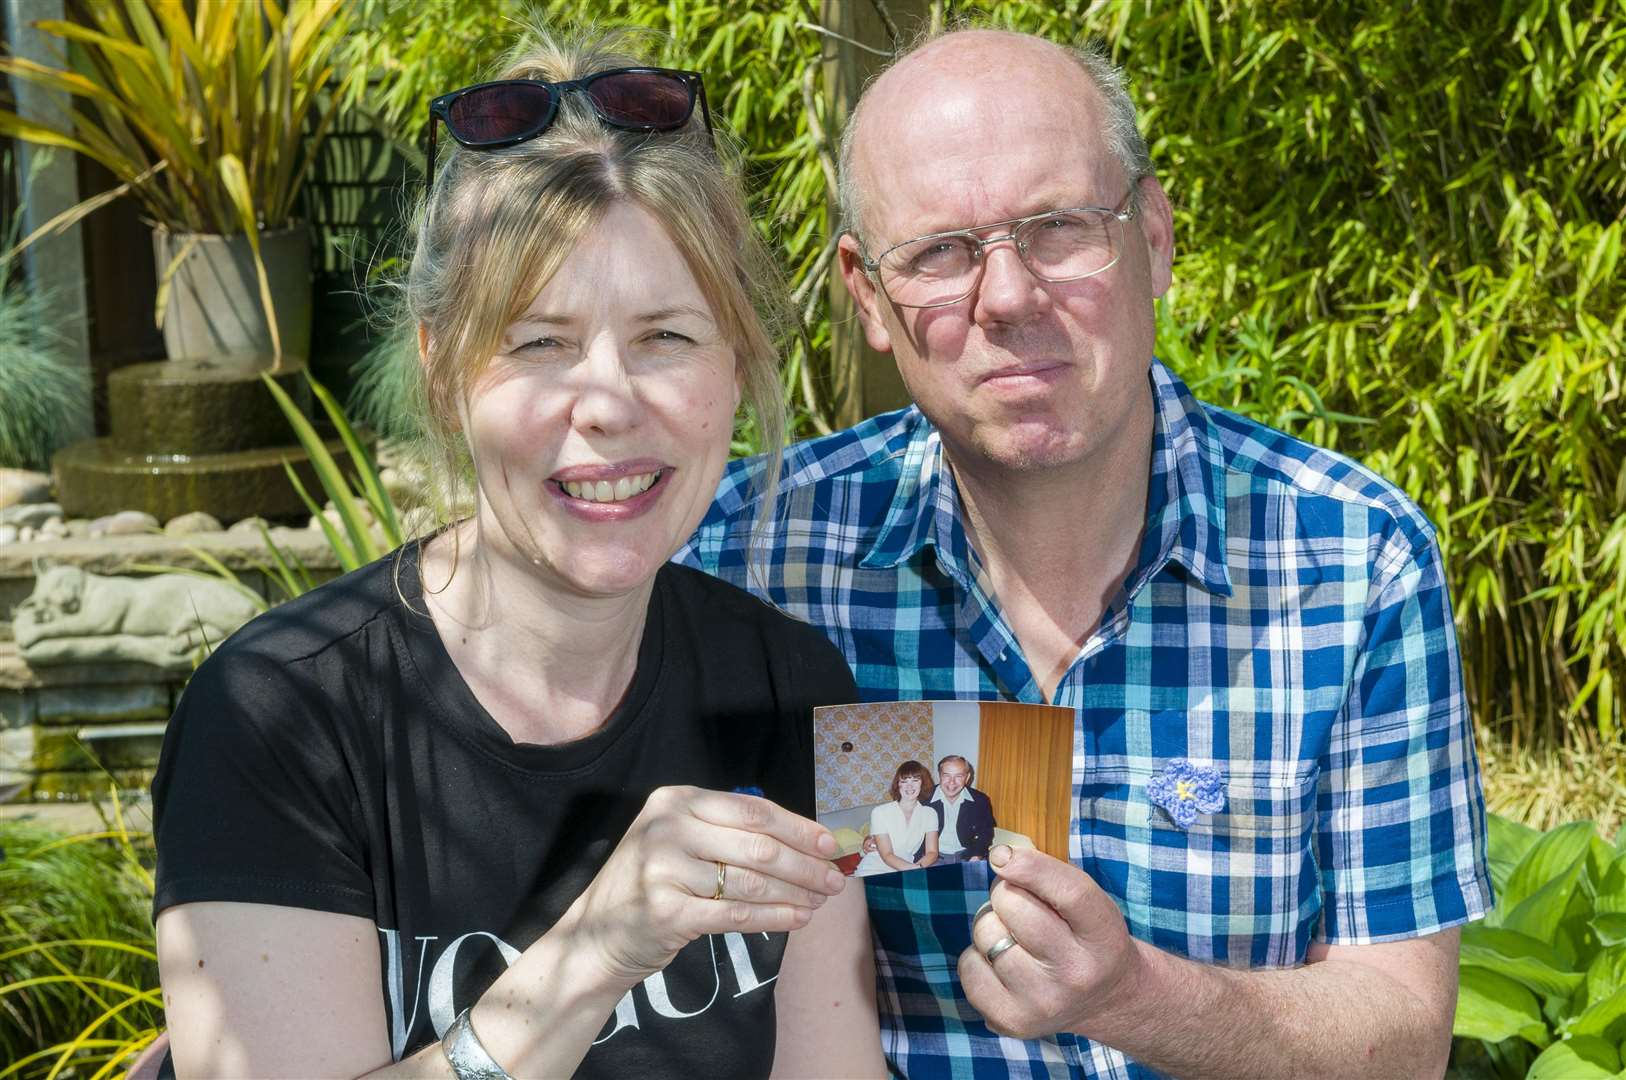 Long Stratton, Norfolk. Nicola King lost both her parents to dementia and is now setting up a family fun evening, and potentially a mobile dementia cafe, in their memory, she's pictured with her husband Andrew King. They're pictured holding a picture of her parents George and Annie Flaherty.Picture: Mark Bullimore Photography (2186880)